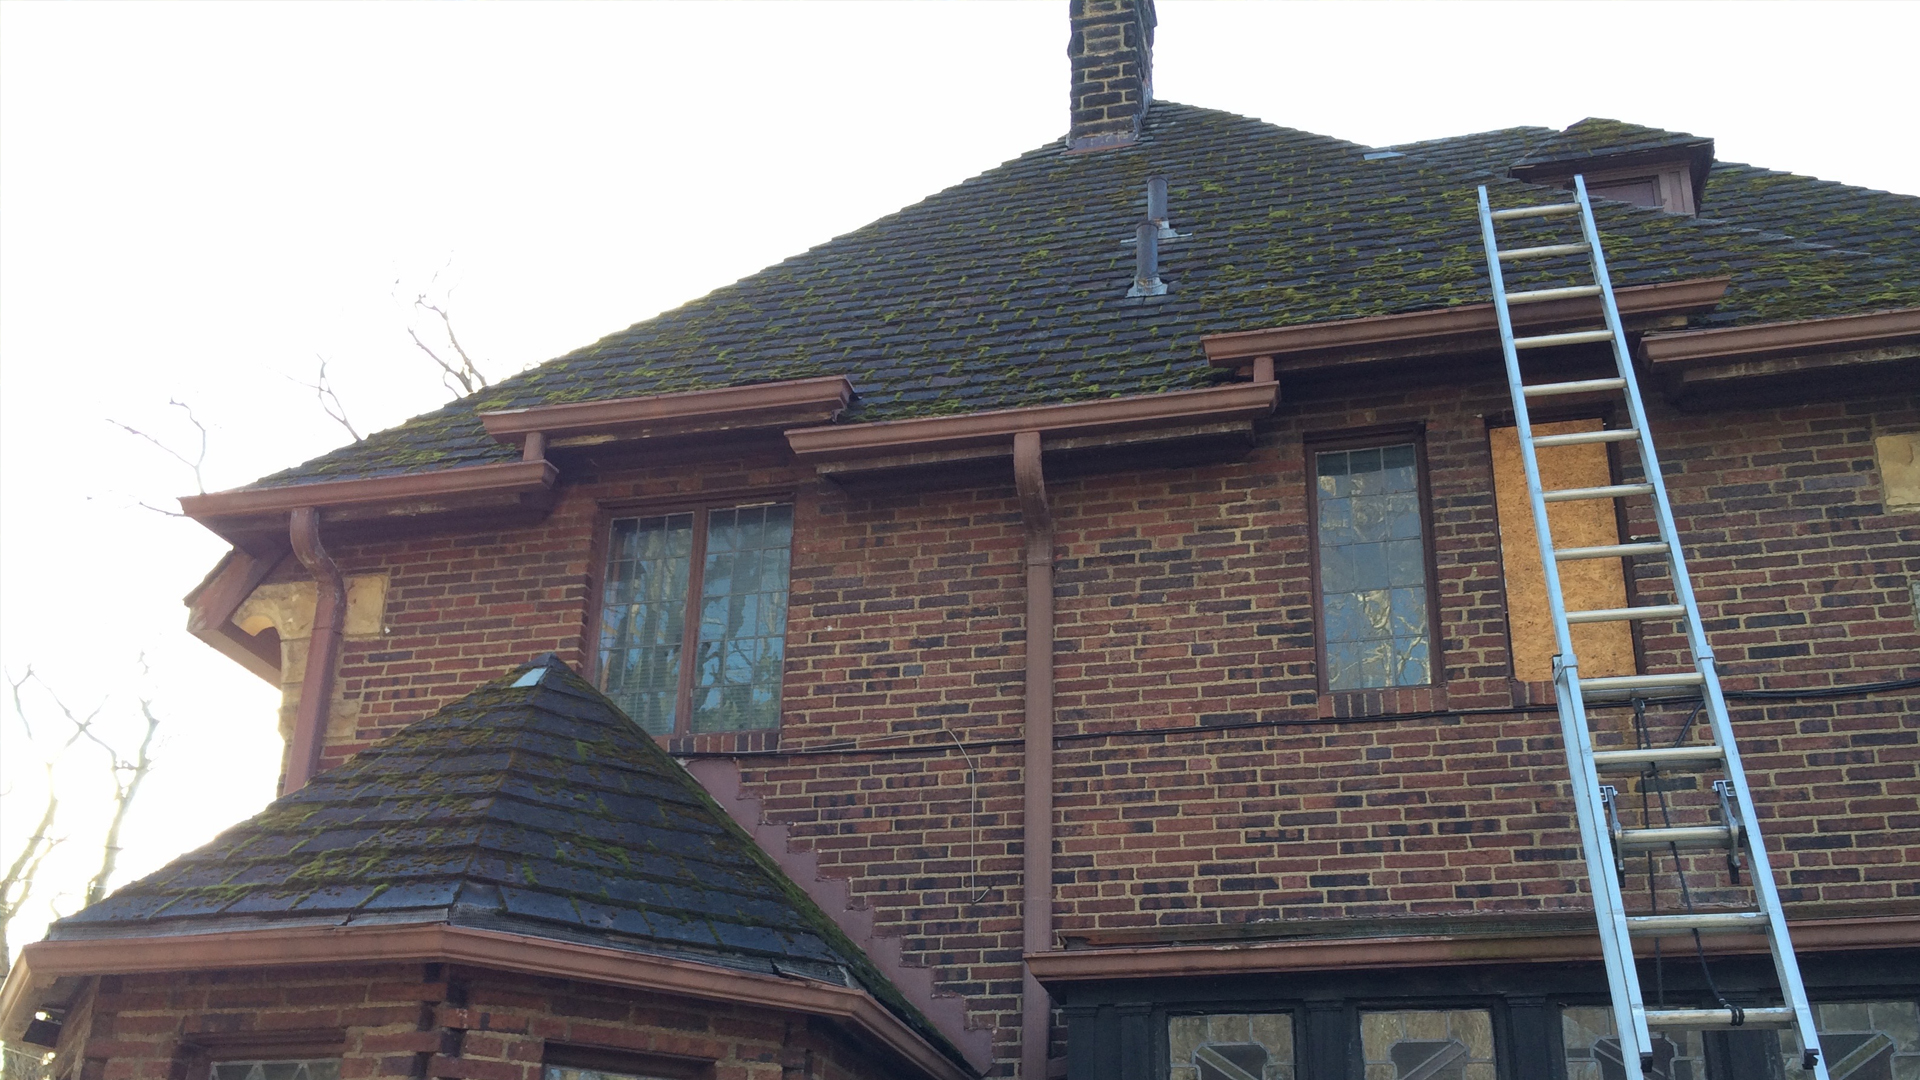 Cleveland Roofing Cleveland Residential Roofing Cleveland Commercial Roofing  Cleveland Gutters Cleveland Siding